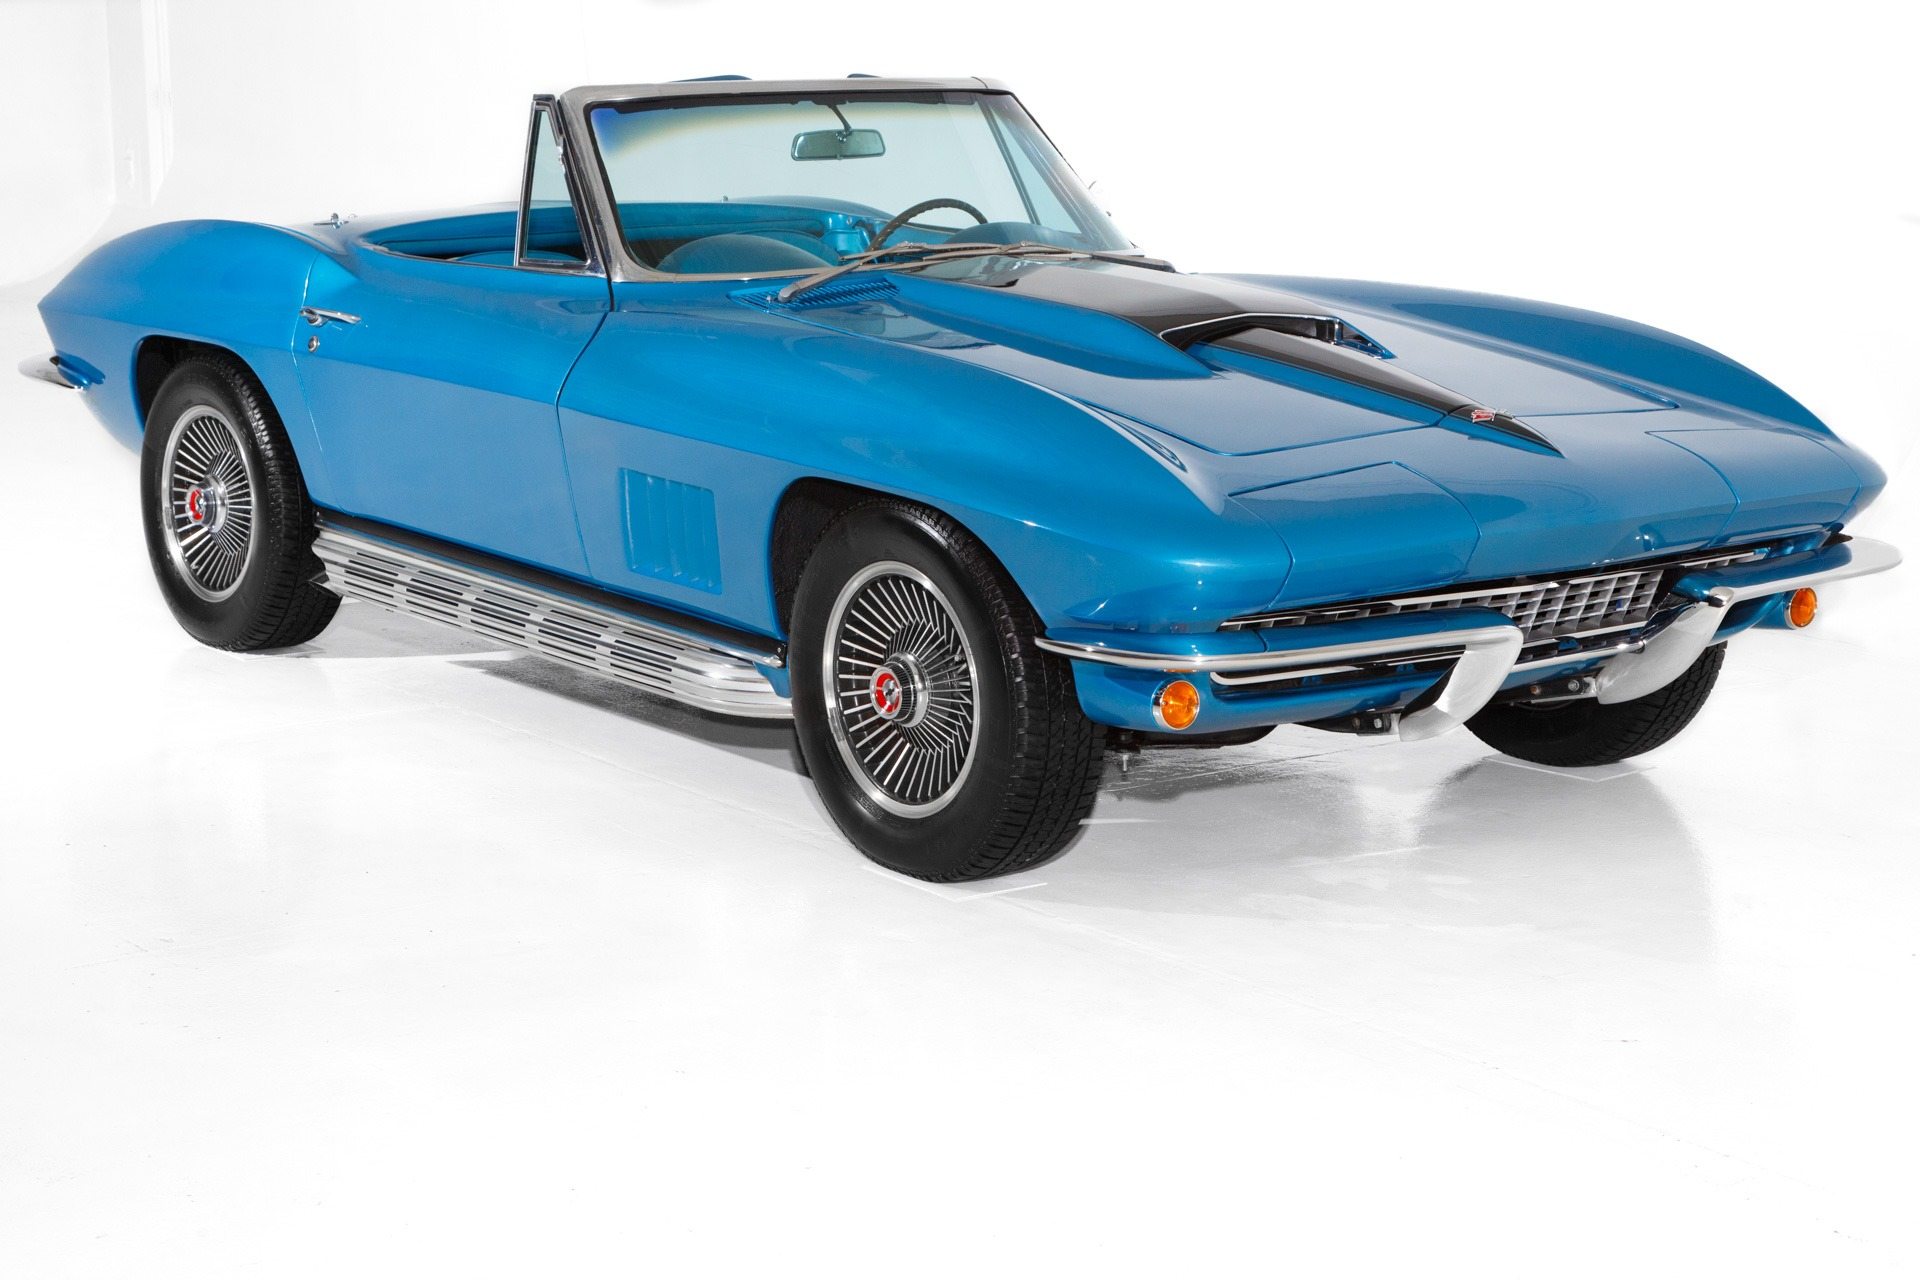 For Sale Used 1967 Chevrolet Corvette Blue 327/350 4-Speed | American Dream Machines Des Moines IA 50309